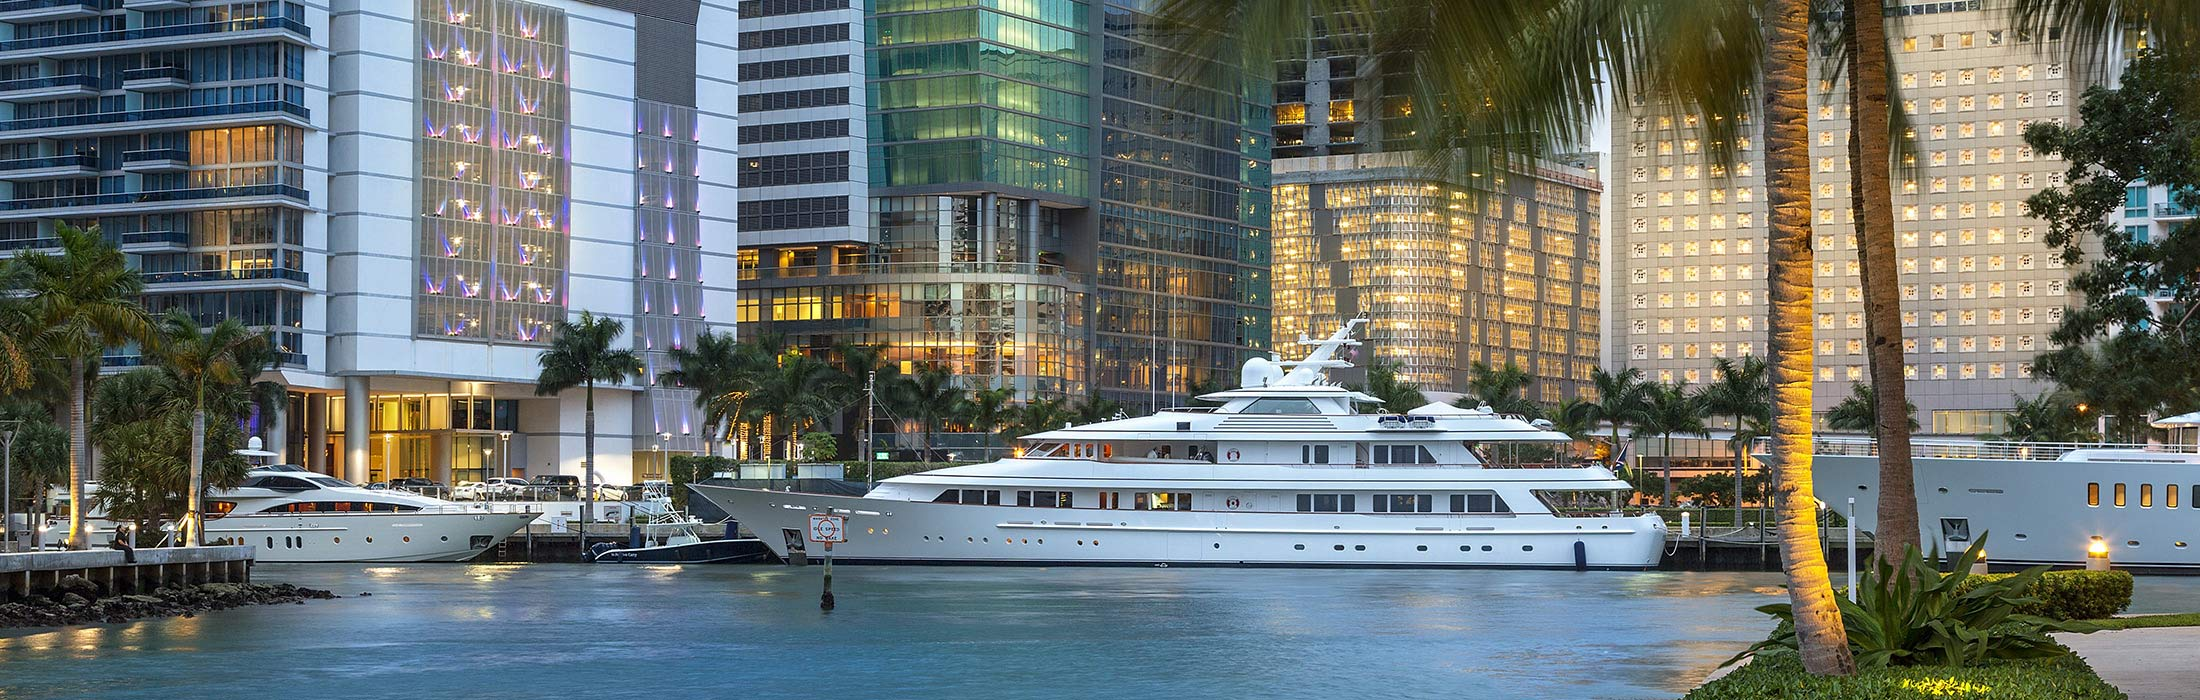 top-yacht-charter-destinations-north-america-miami-main-slider-1.jpg